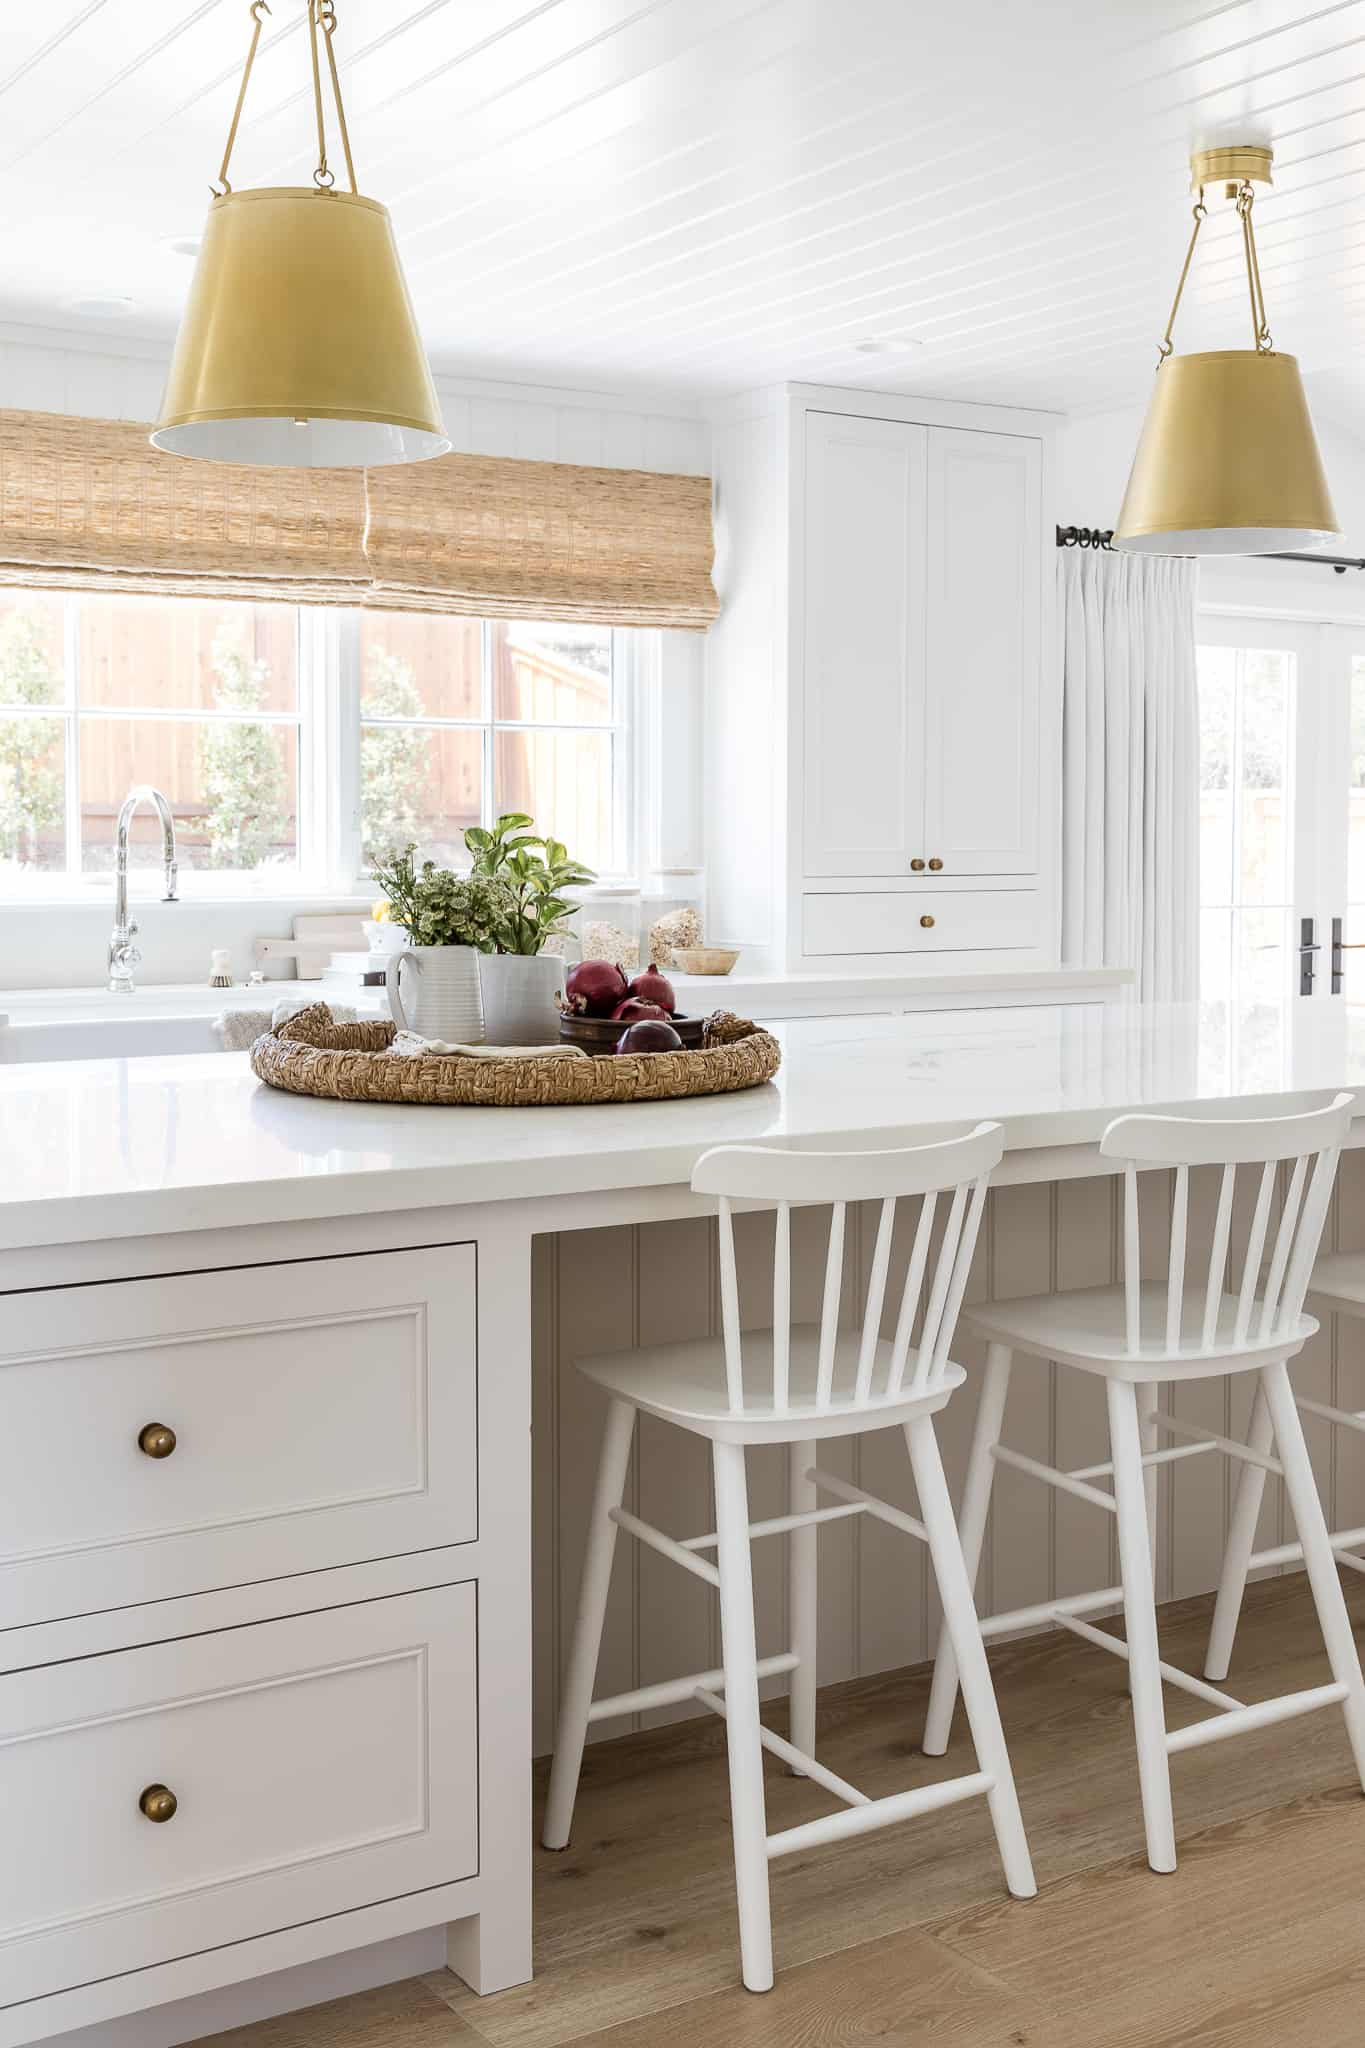 Port Newport Project - Mindy Gayer Design Co. - Coastal Family Home Kitchen